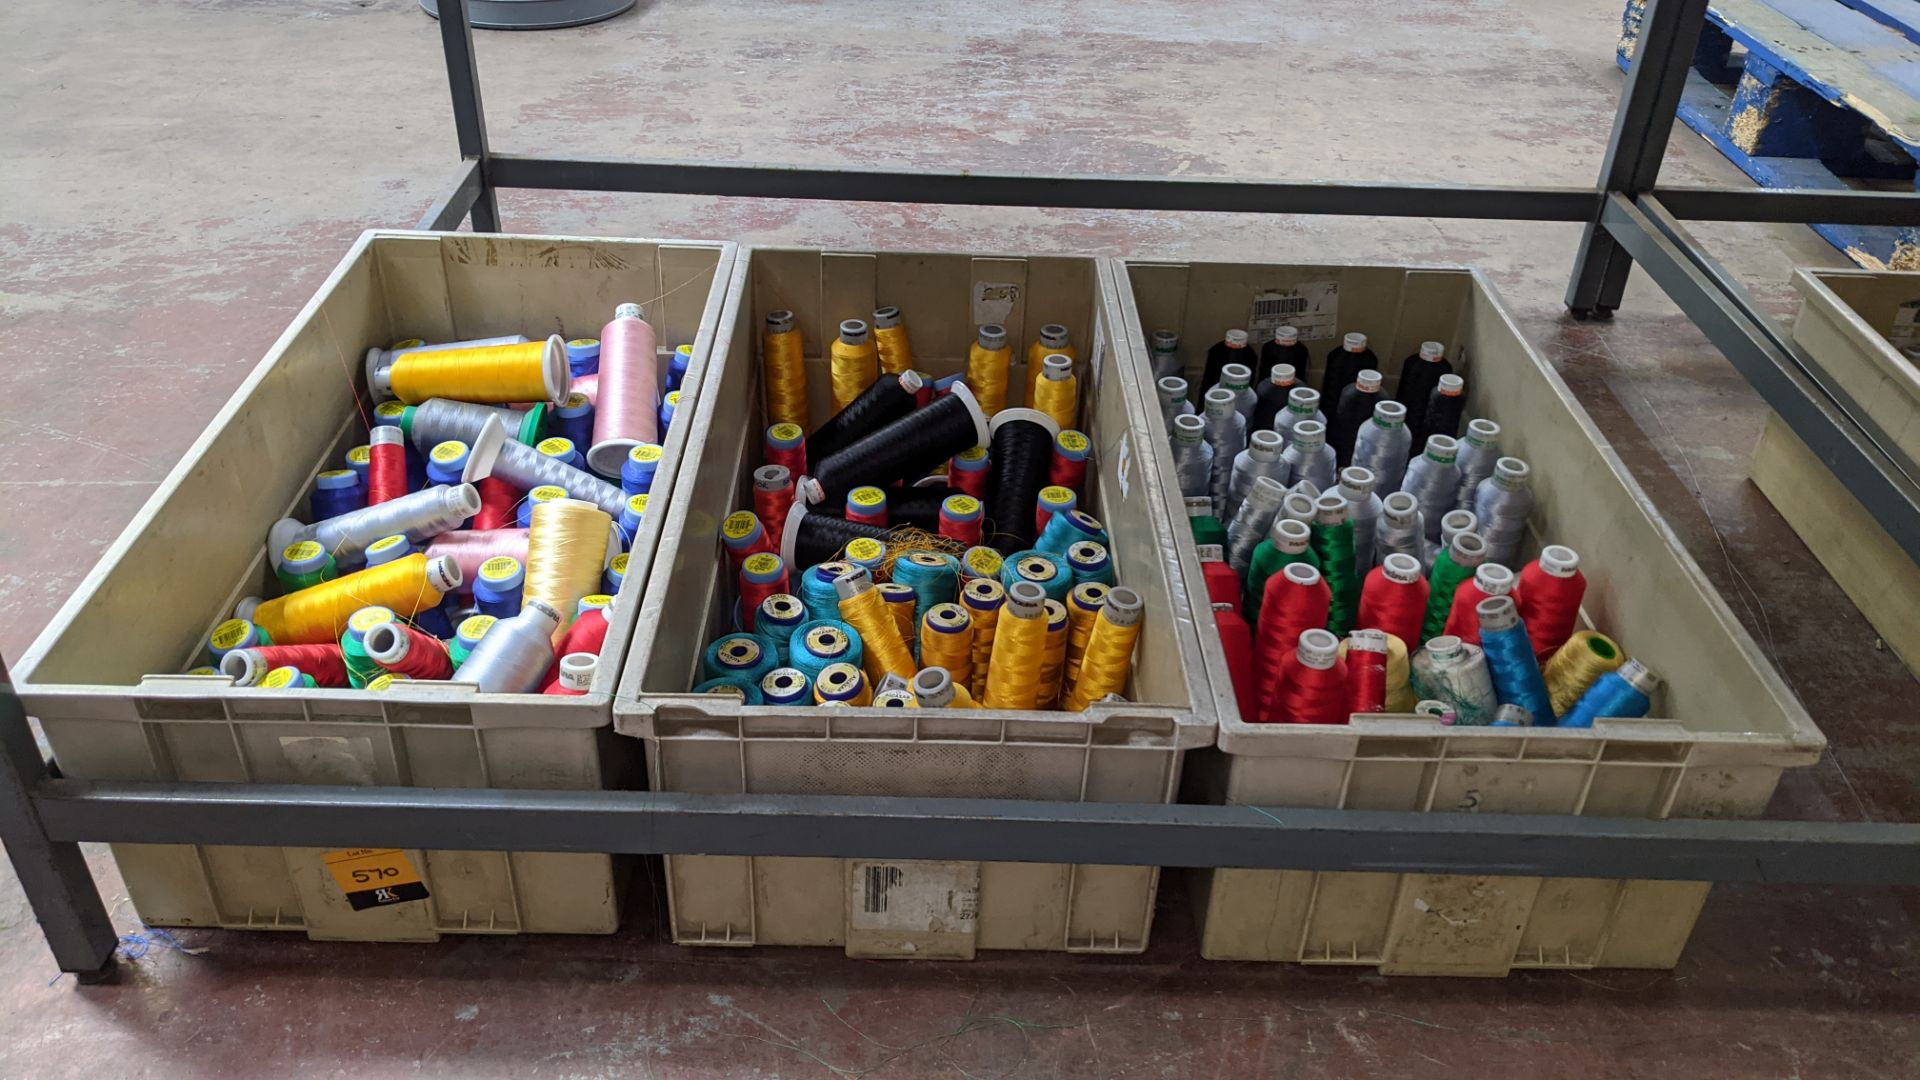 The contents of 3 large crates of assorted embroidery thread